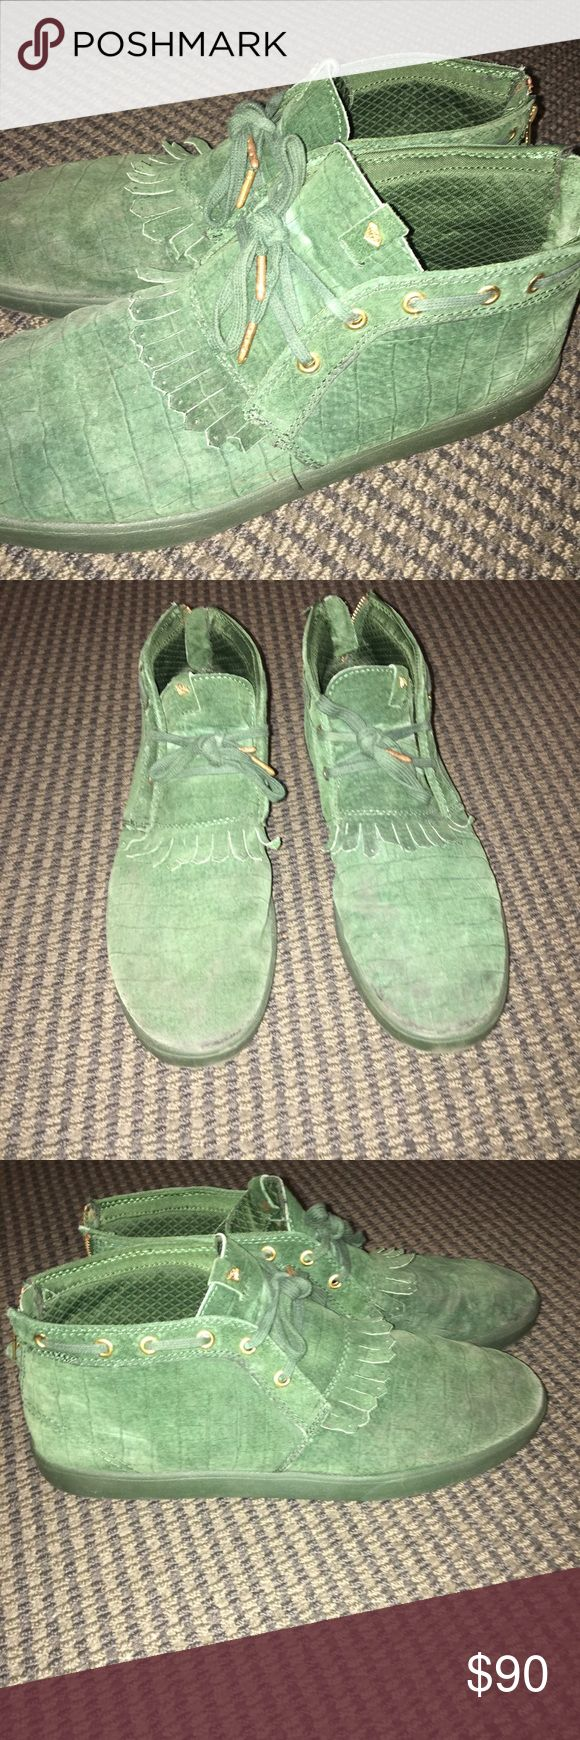 Diamond supply company jasper Sold out diamond supply company jasper in green leather croc skin pattern. Lightly worn still great condition. Diamond Supply Co. Shoes Chukka Boots